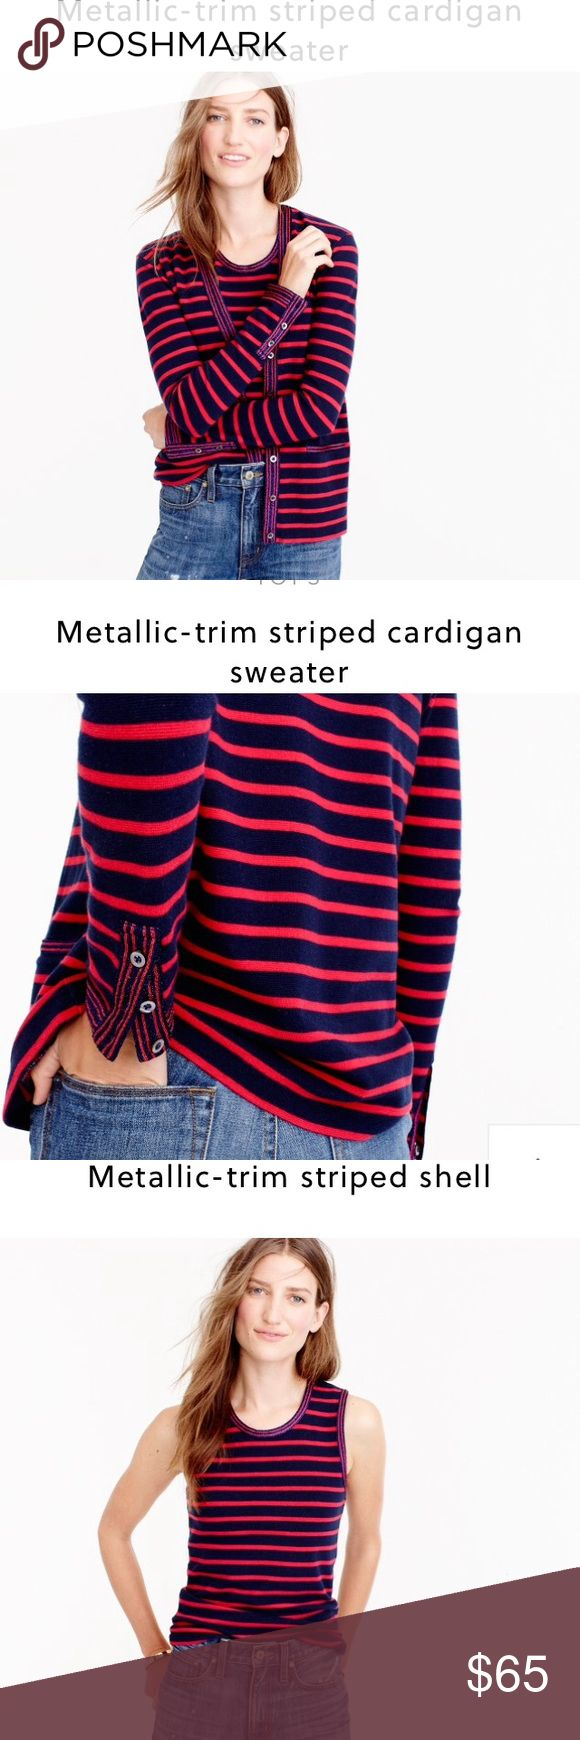 J. Crew metallic trim cardigan twinset J. Crew cardigan set • matching tank • striped  twinset • metallic cuffs, pockets and lapel • pockets still sewn shut • Sz XS • like-new, excellent condition • fast same/next day shipping • BUY IT NOW!!! J. Crew Tops